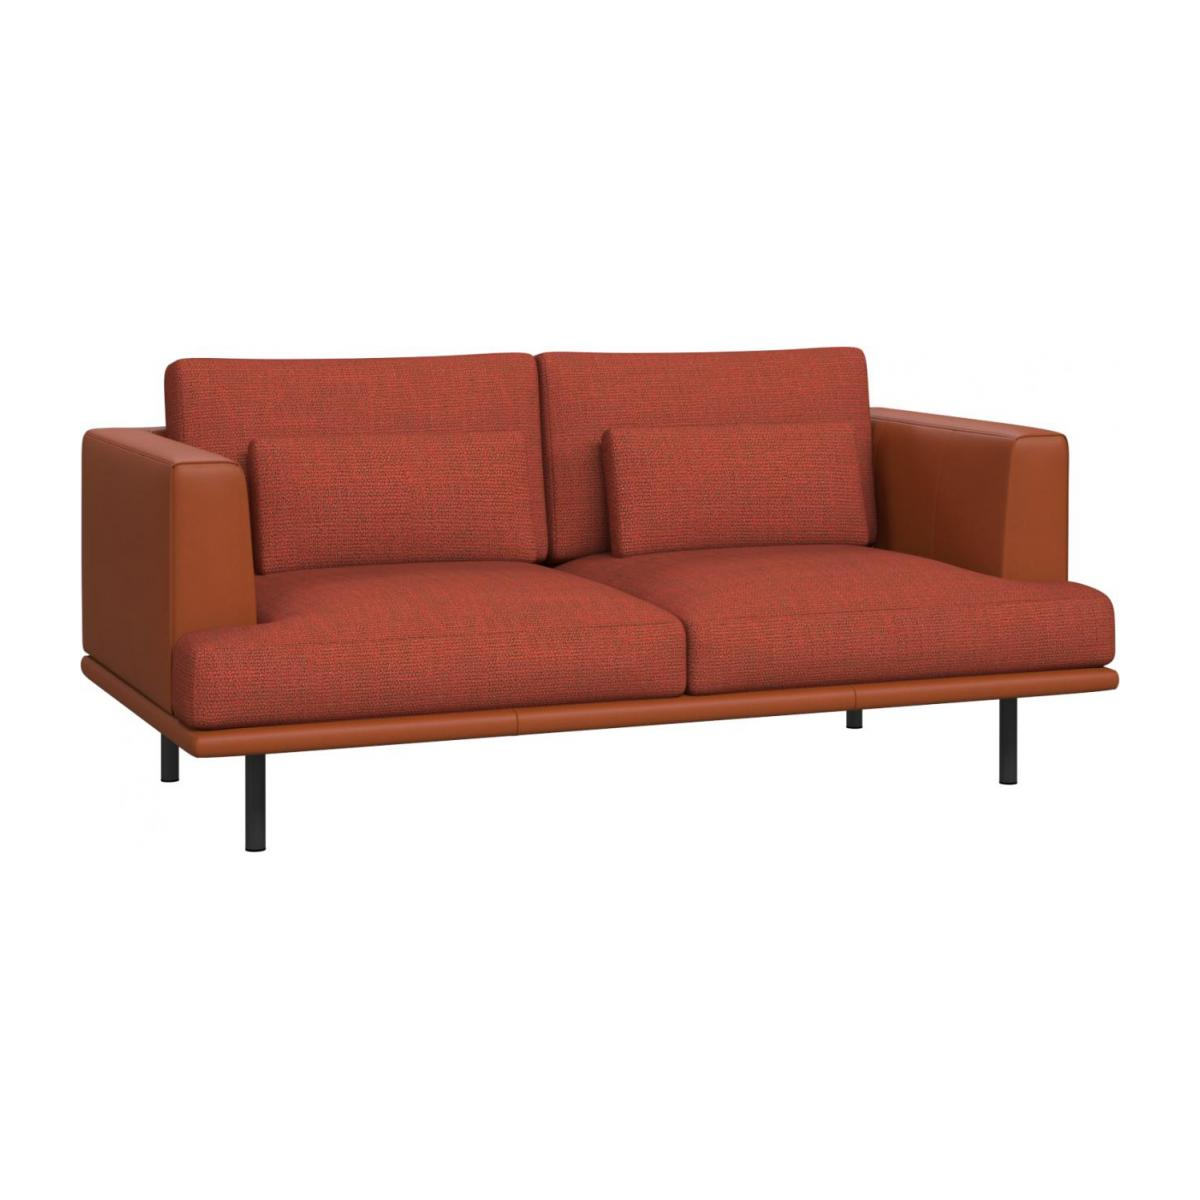 2 seater sofa in Fasoli fabric, warm red rock with base and armrests in brown leather n°1